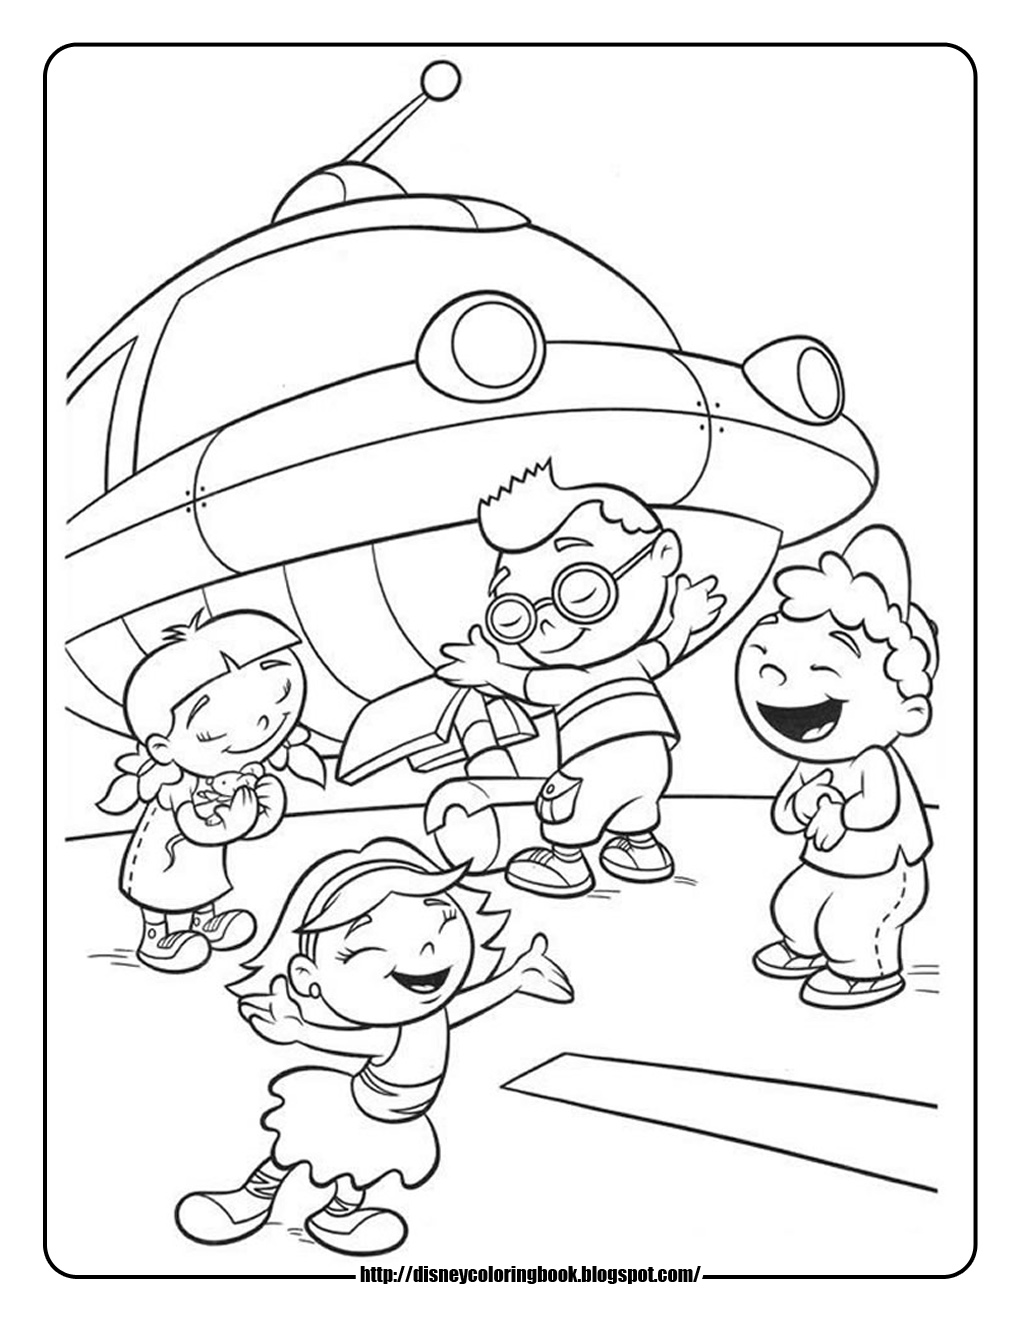 1020x1320 Disney Coloring Pages And Sheets For Kids Little Einsteins 4